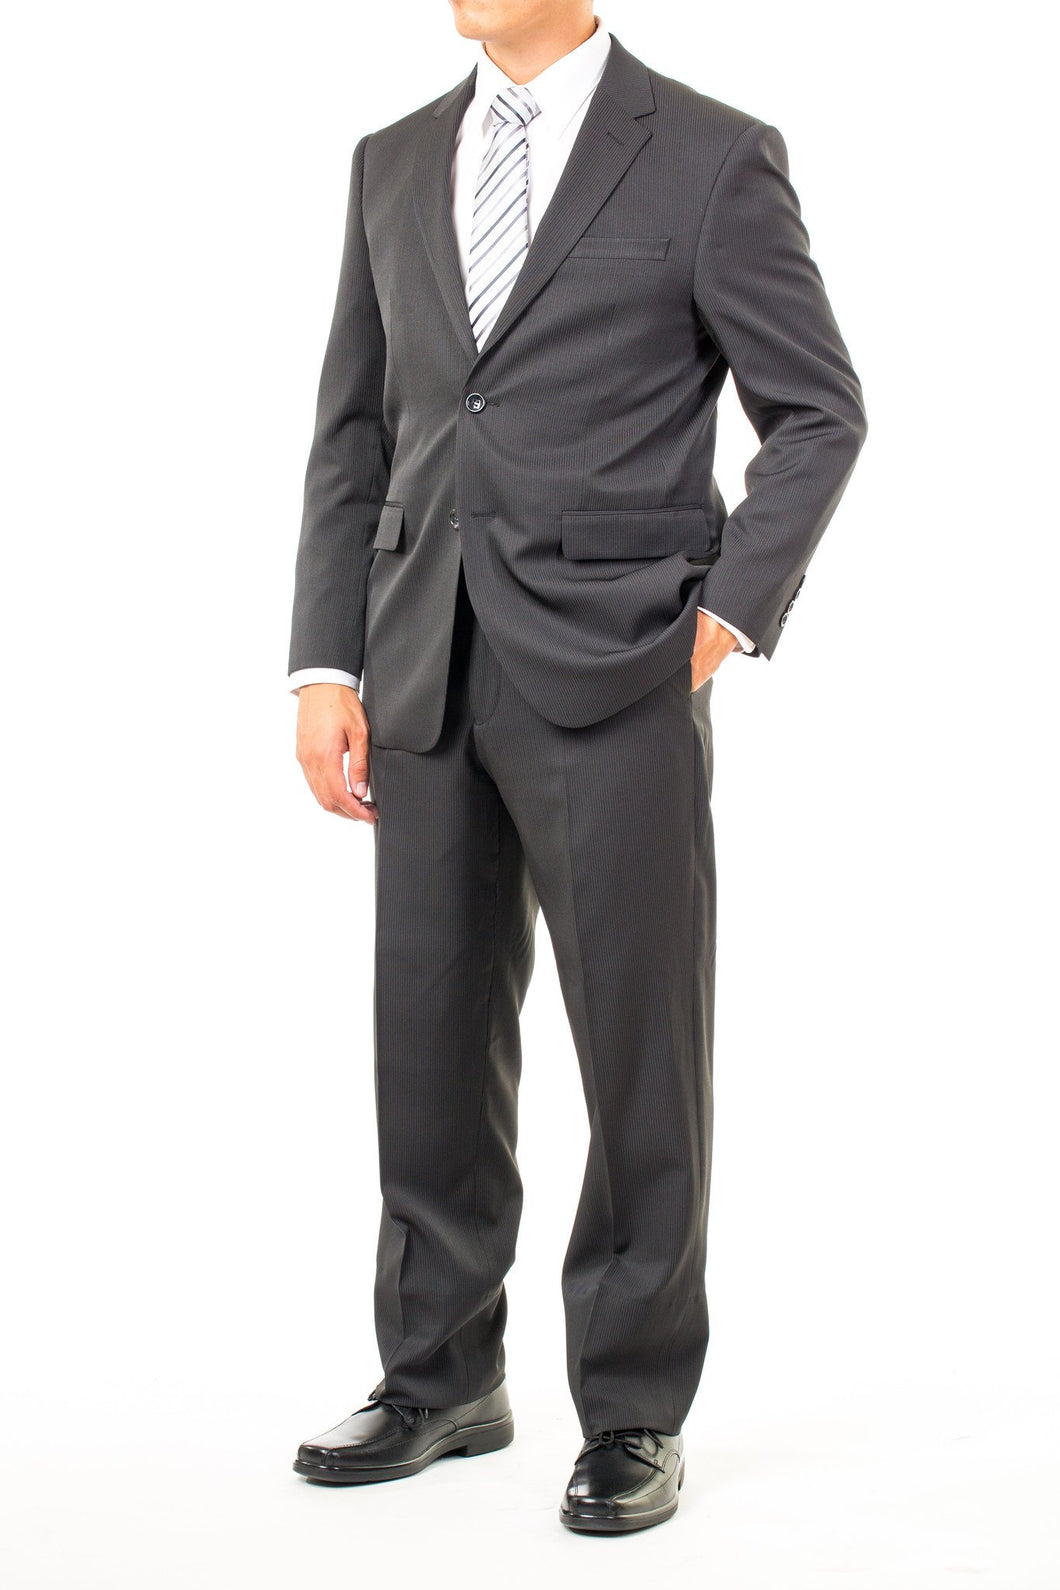 Superior Quality Lightweight LDS Missionary Suit